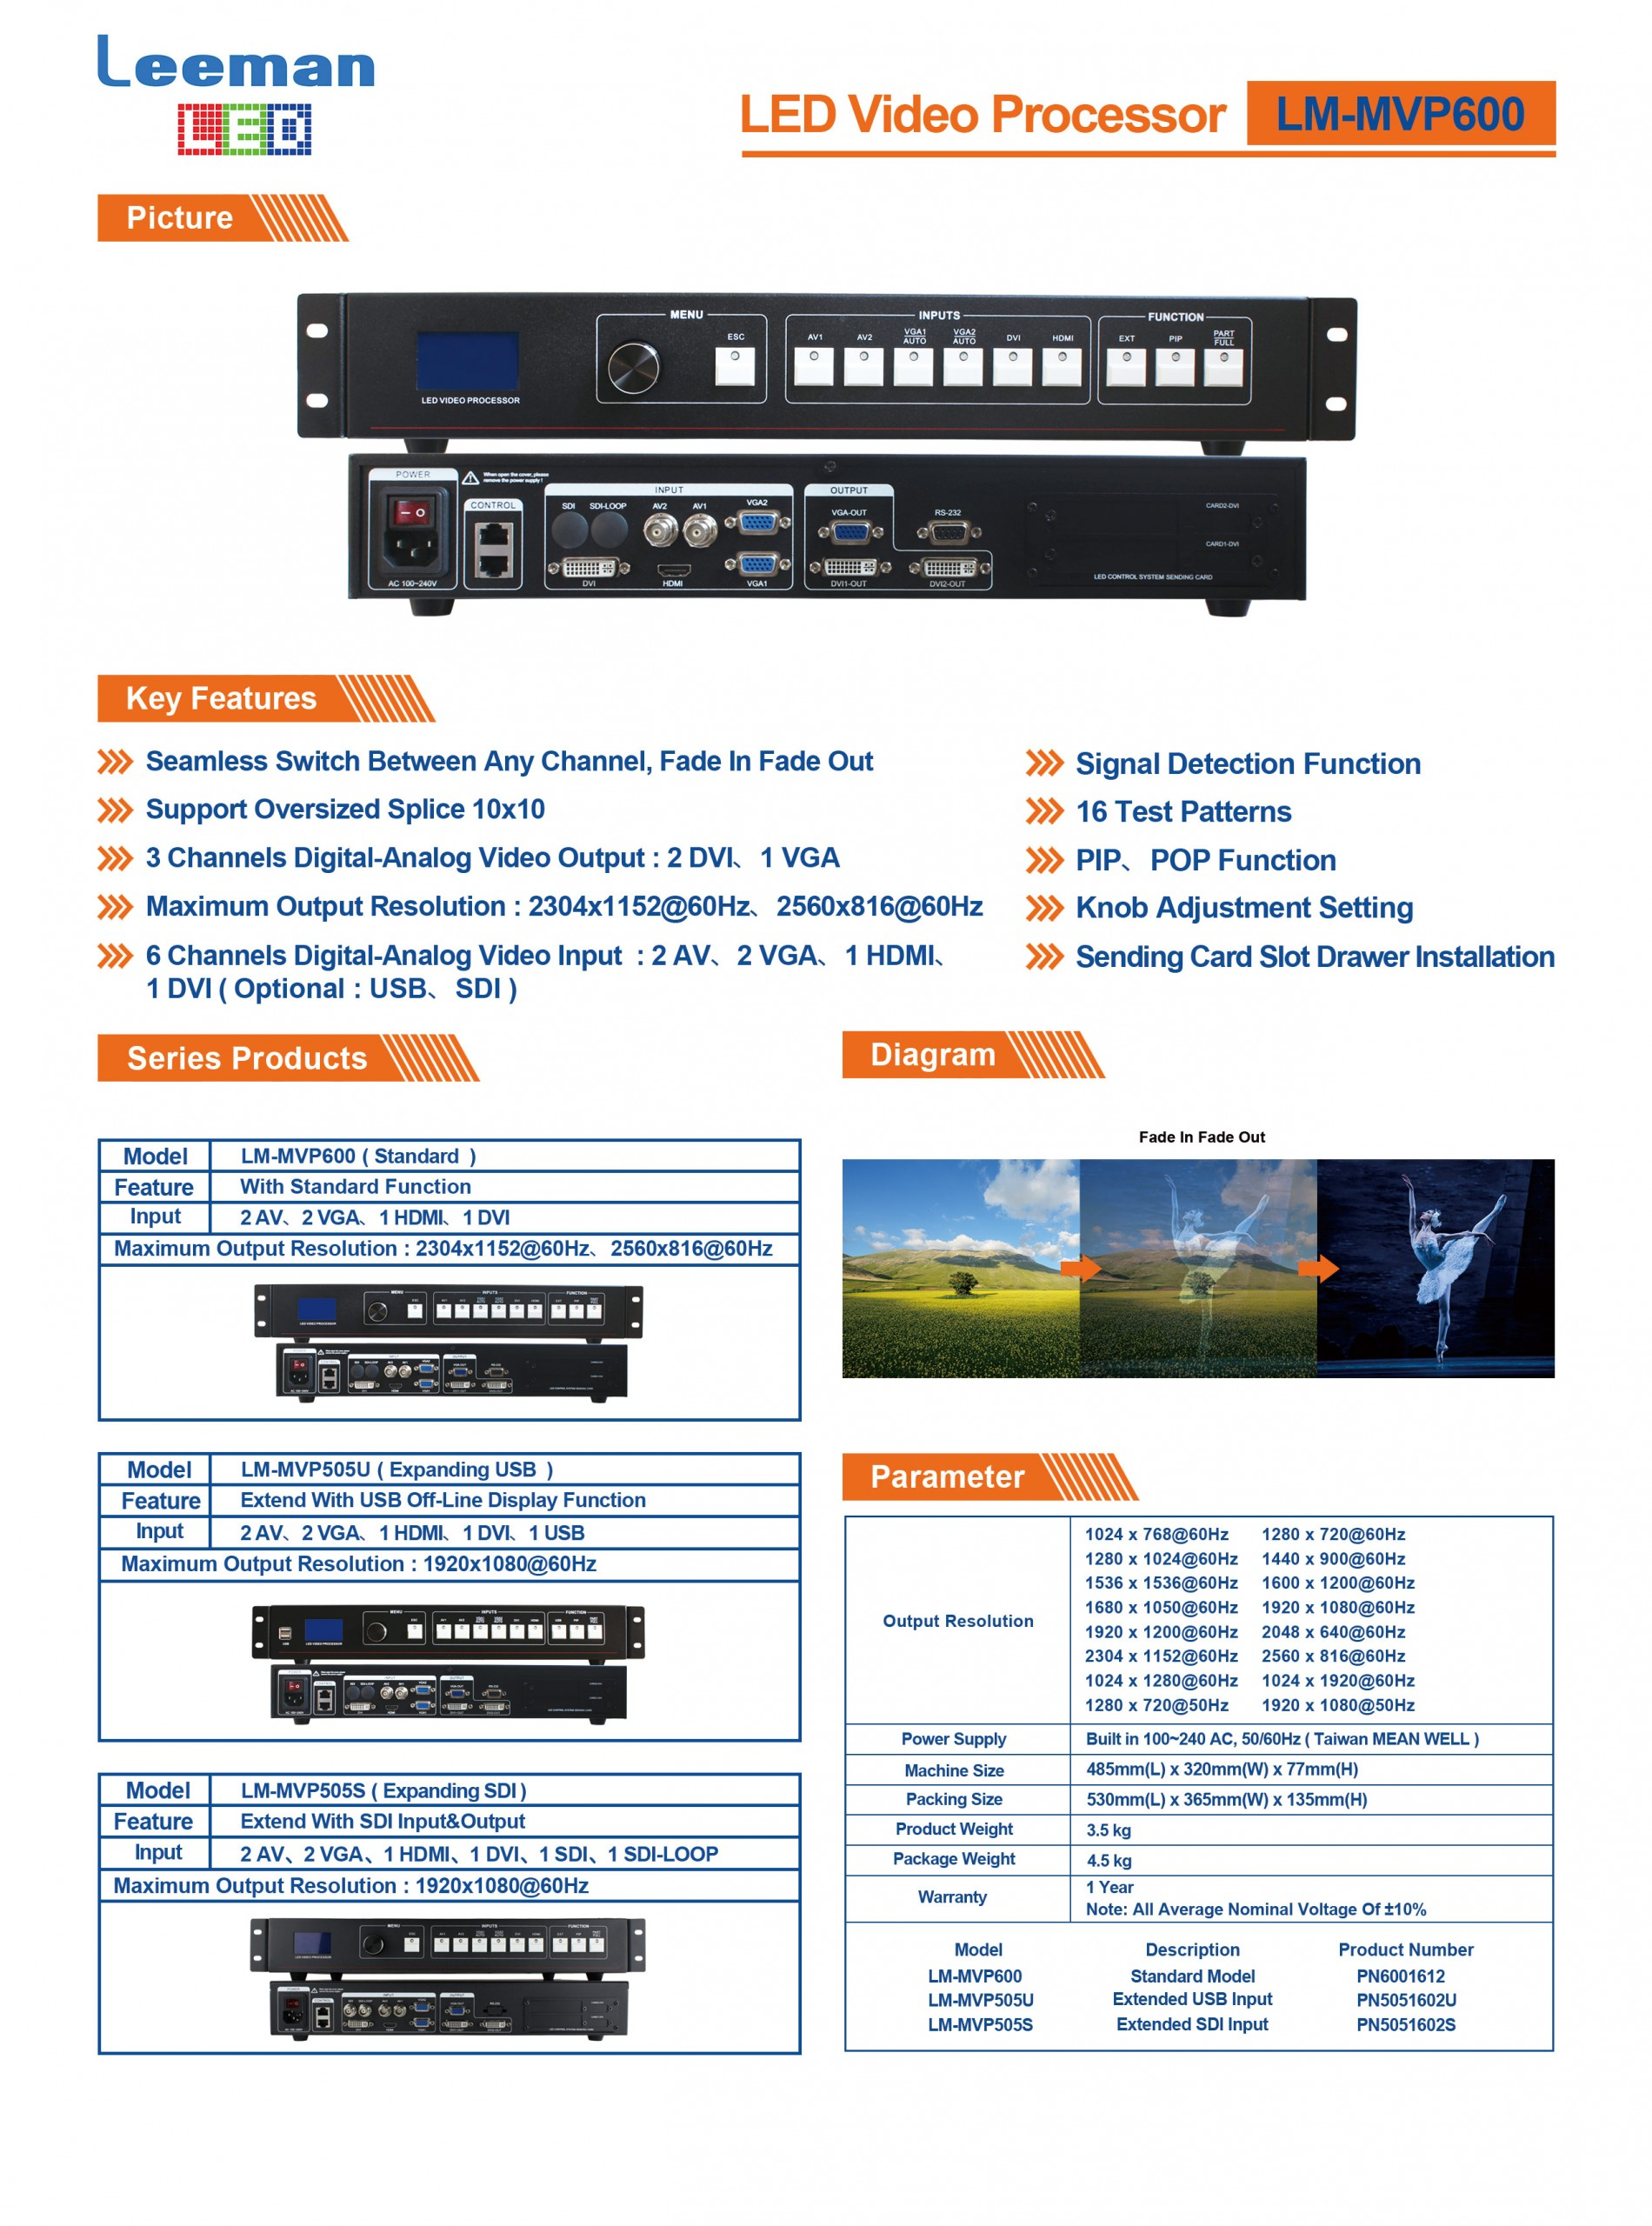 NovaPro UHD Jr All-in-one Professional 4K LED Video Screen Controller